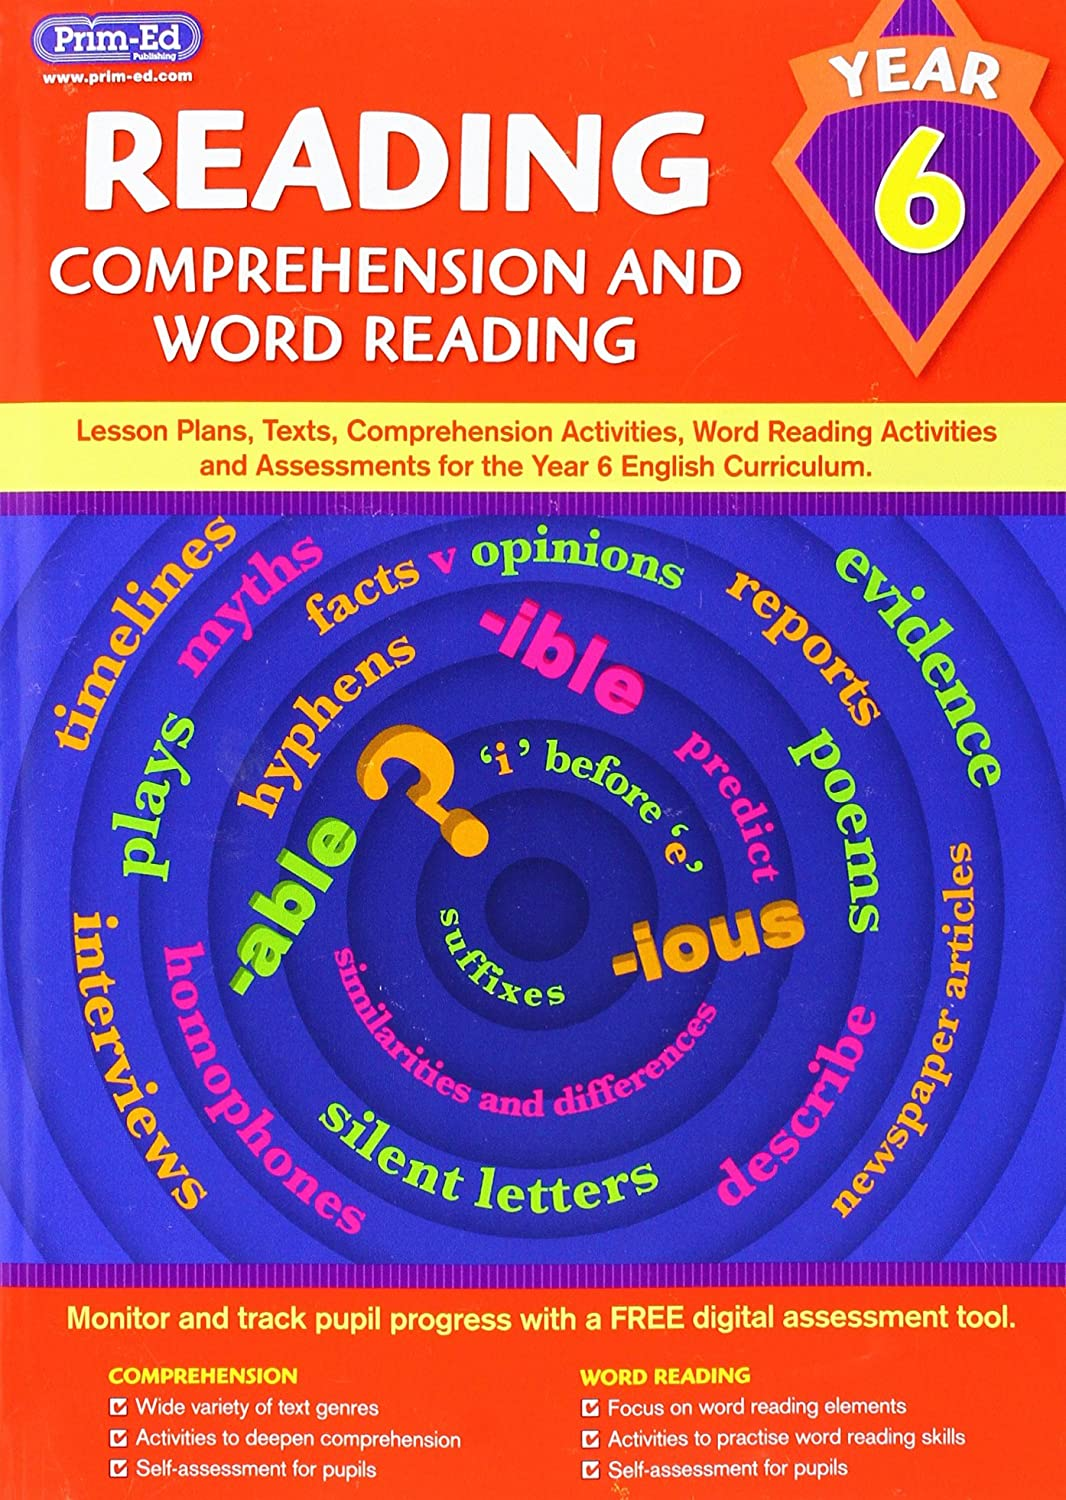 Reading-Comprehension and Word Reading Year 6